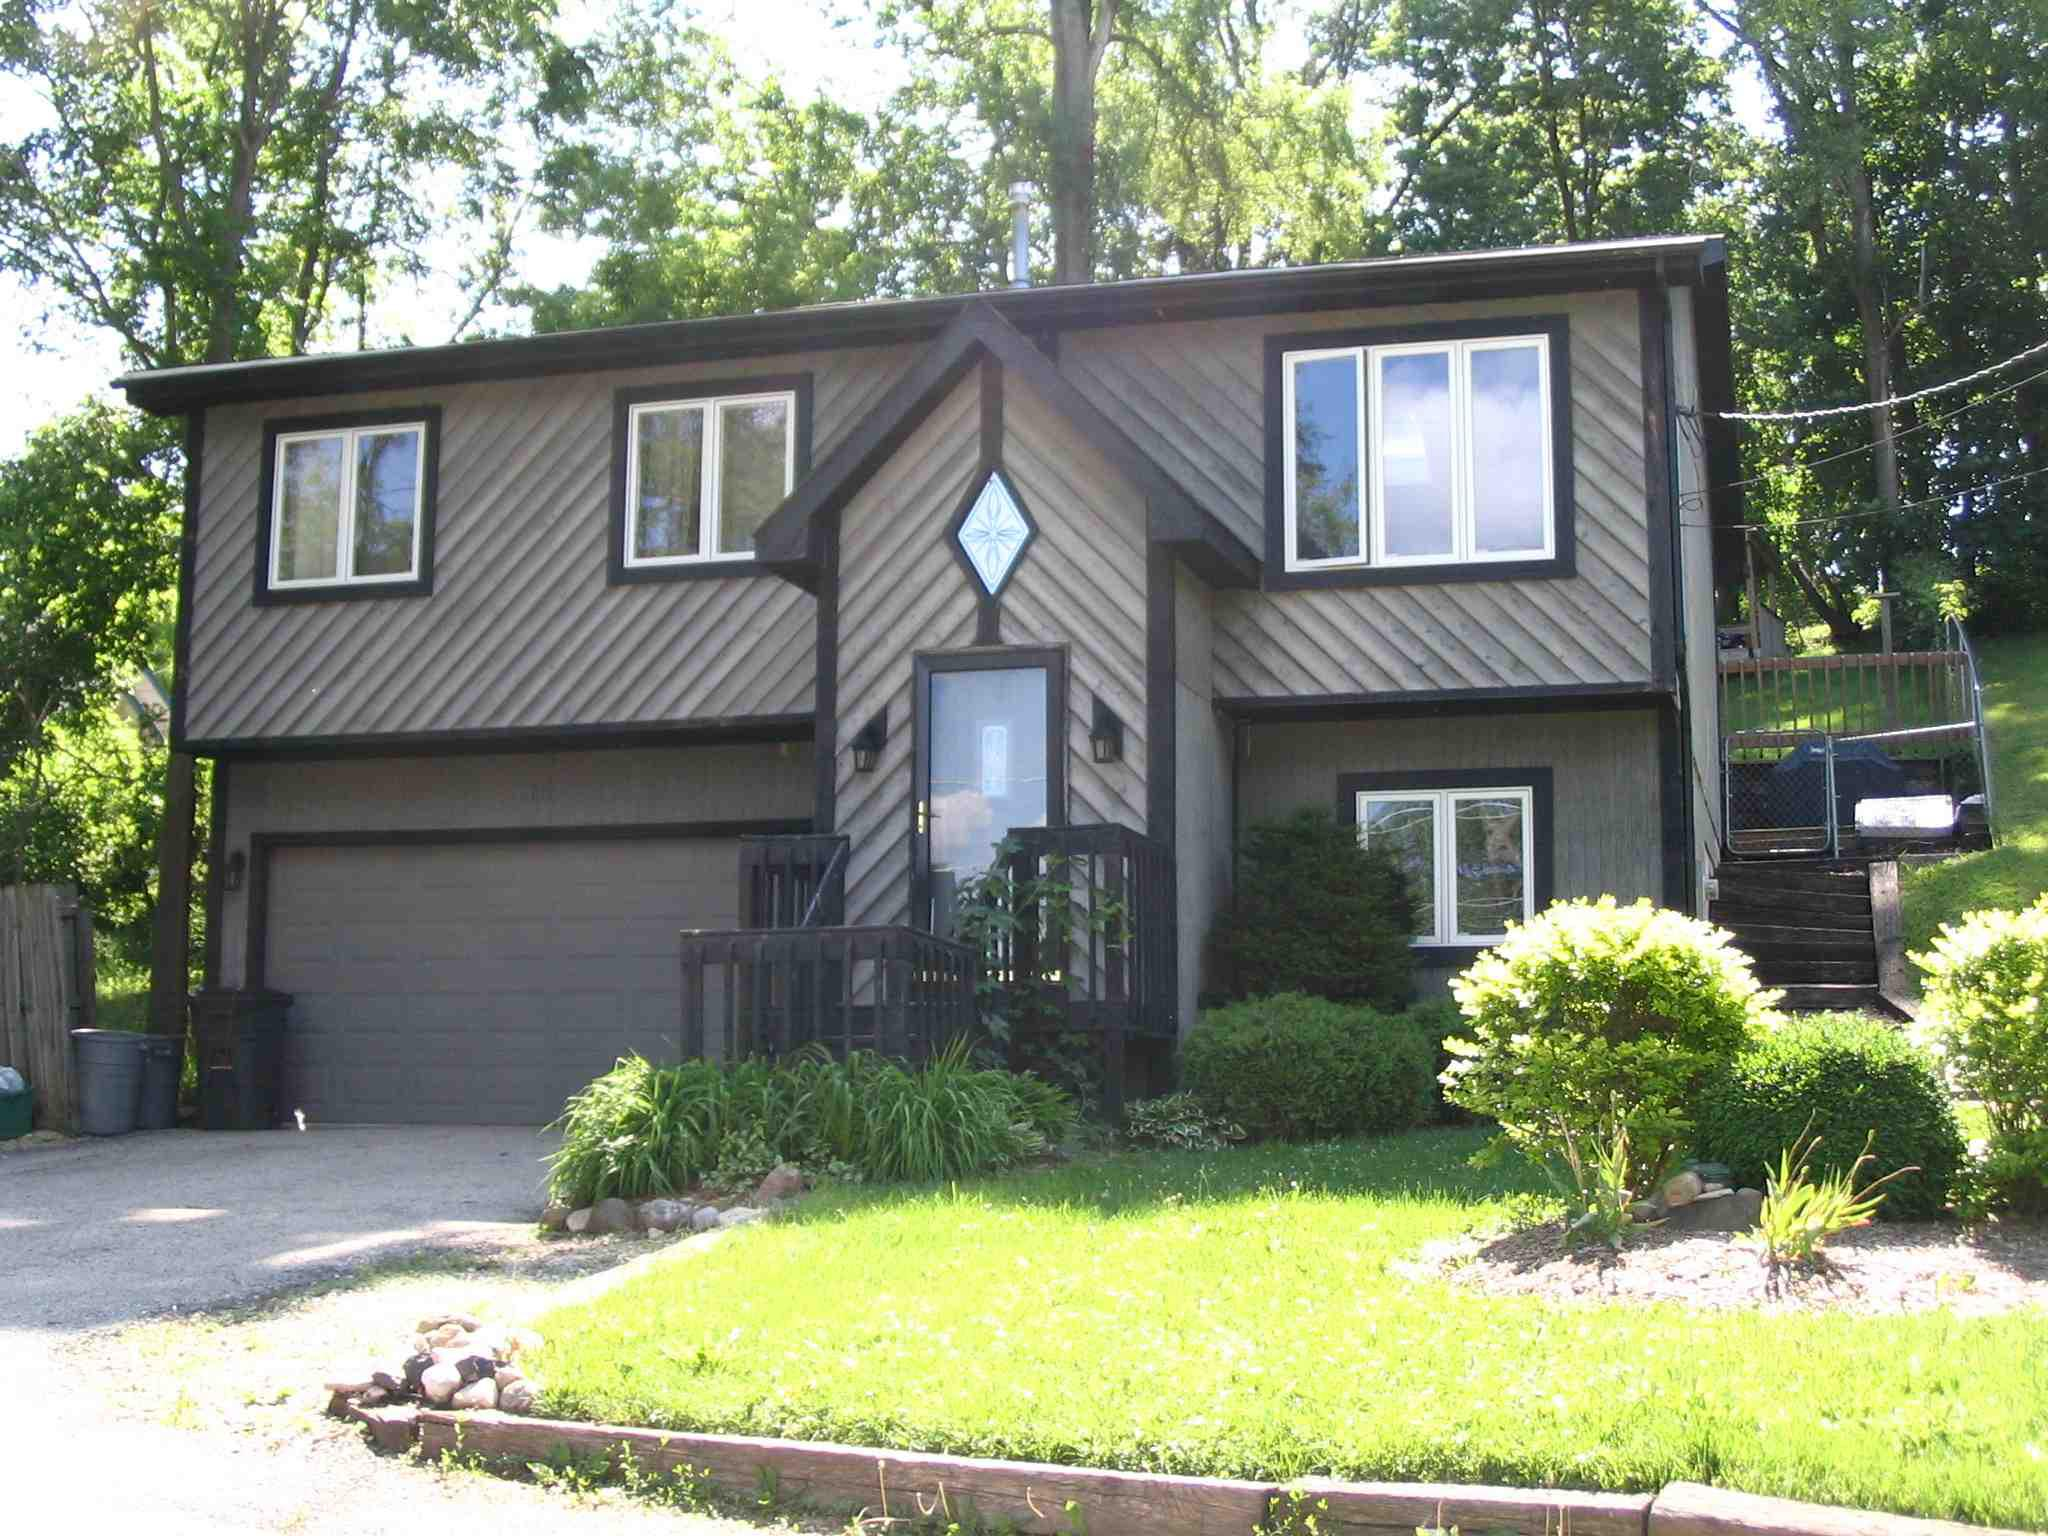 ForSaleByOwner (FSBO) home in Fox Lake, IL at ForSaleByOwnerBuyersGuide.com